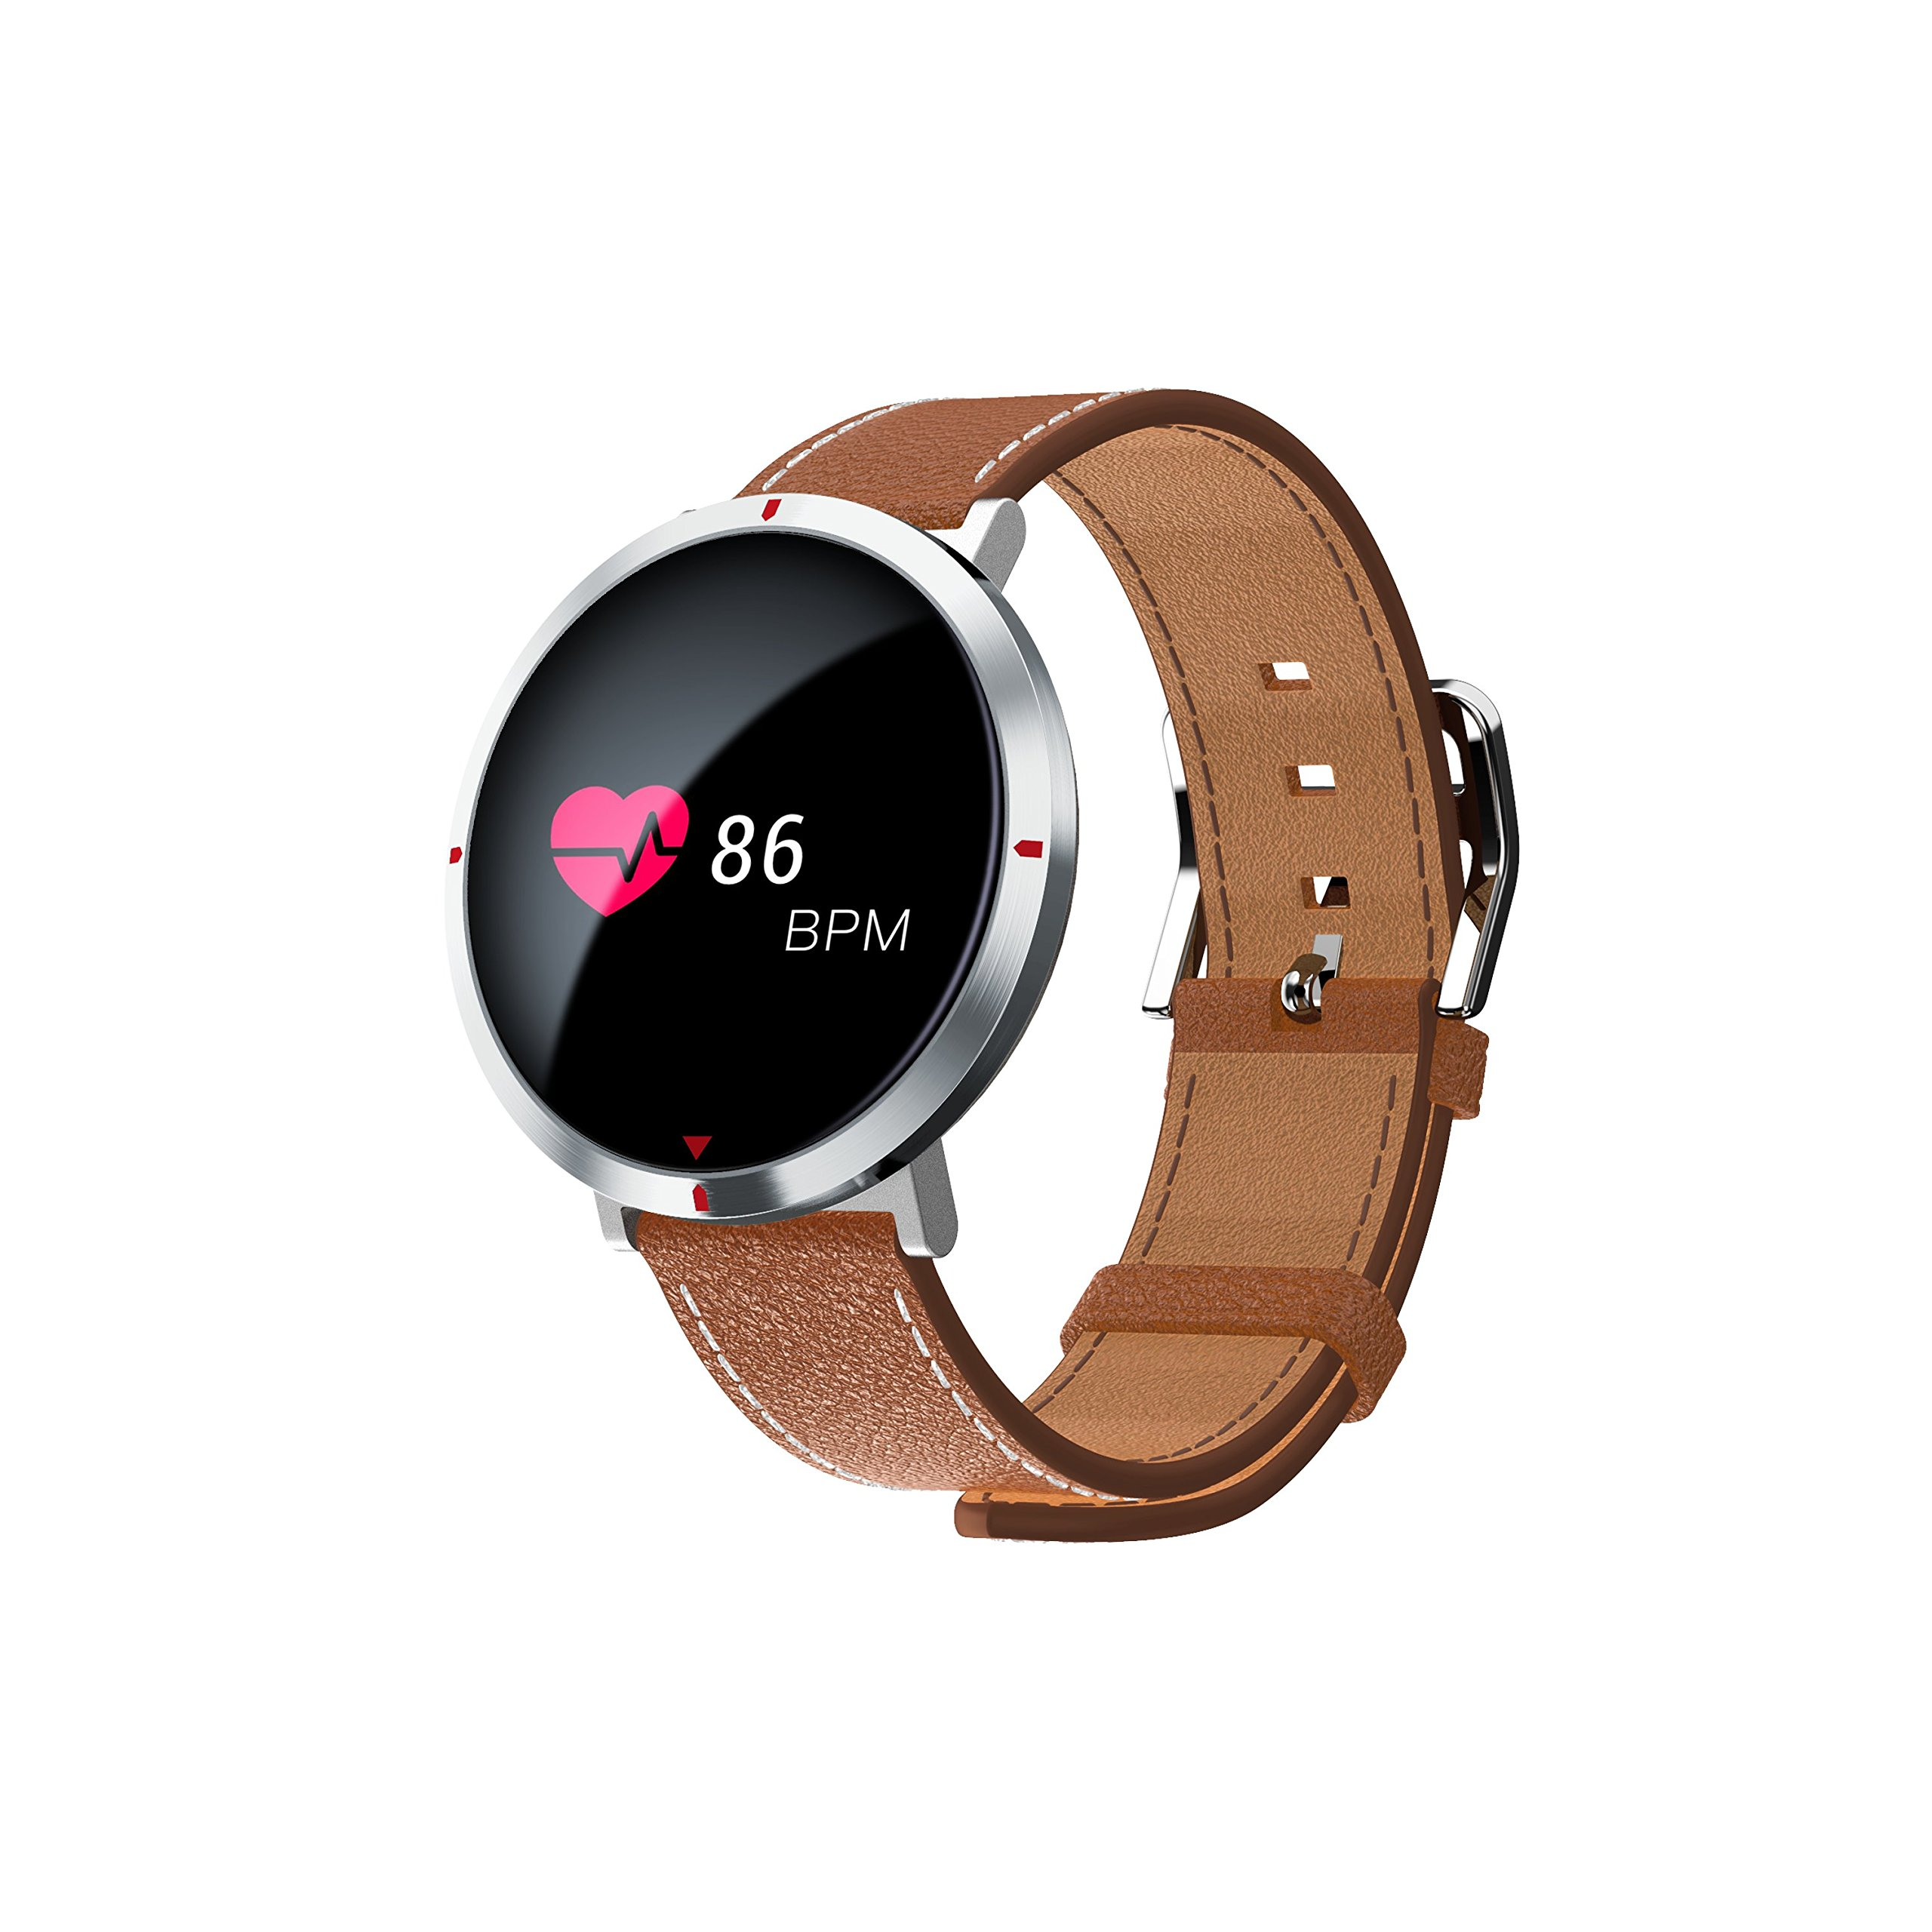 Fitness Tracker, Heart Rate Monitor Activity Tracker Round Screen Smart Wristband With Sleep Monitor Pedometer Sleep Monitor Stopwatch SMS Call Notification Remote Camera Music for iOS/Android (Brown) by Navyin